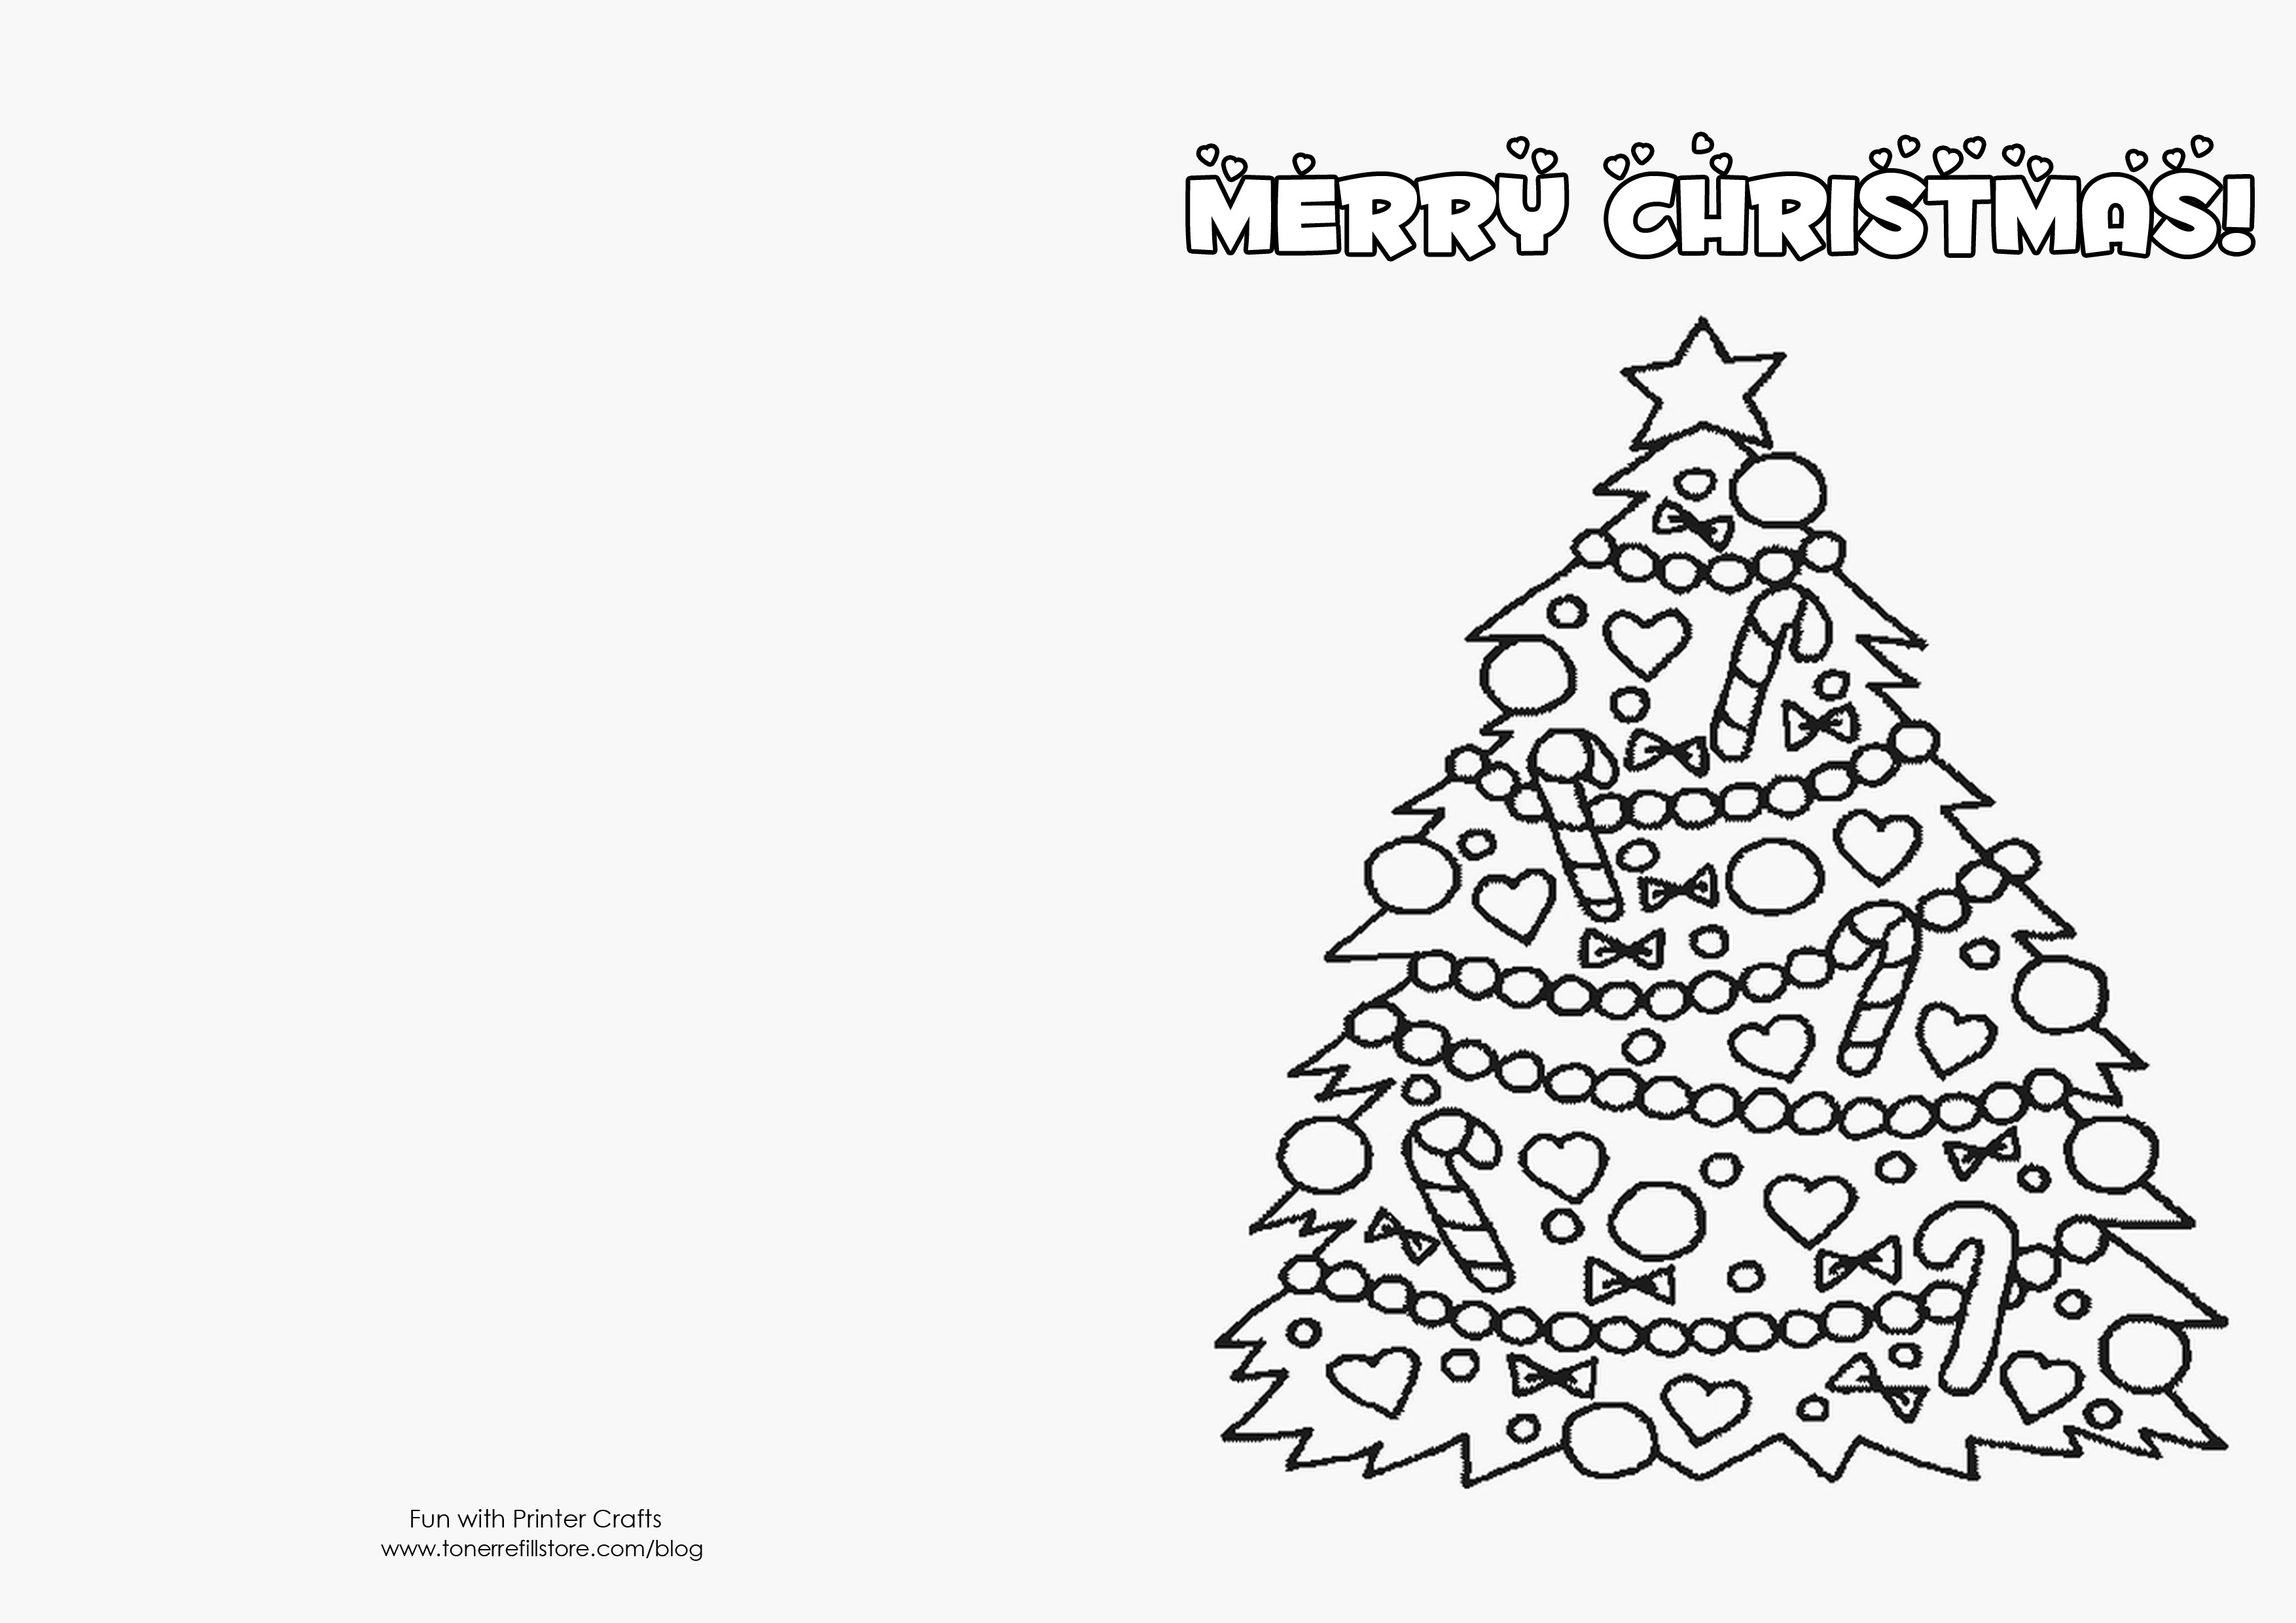 colouring templates christmas printable merry christmas coloring pages for kids adults christmas templates colouring